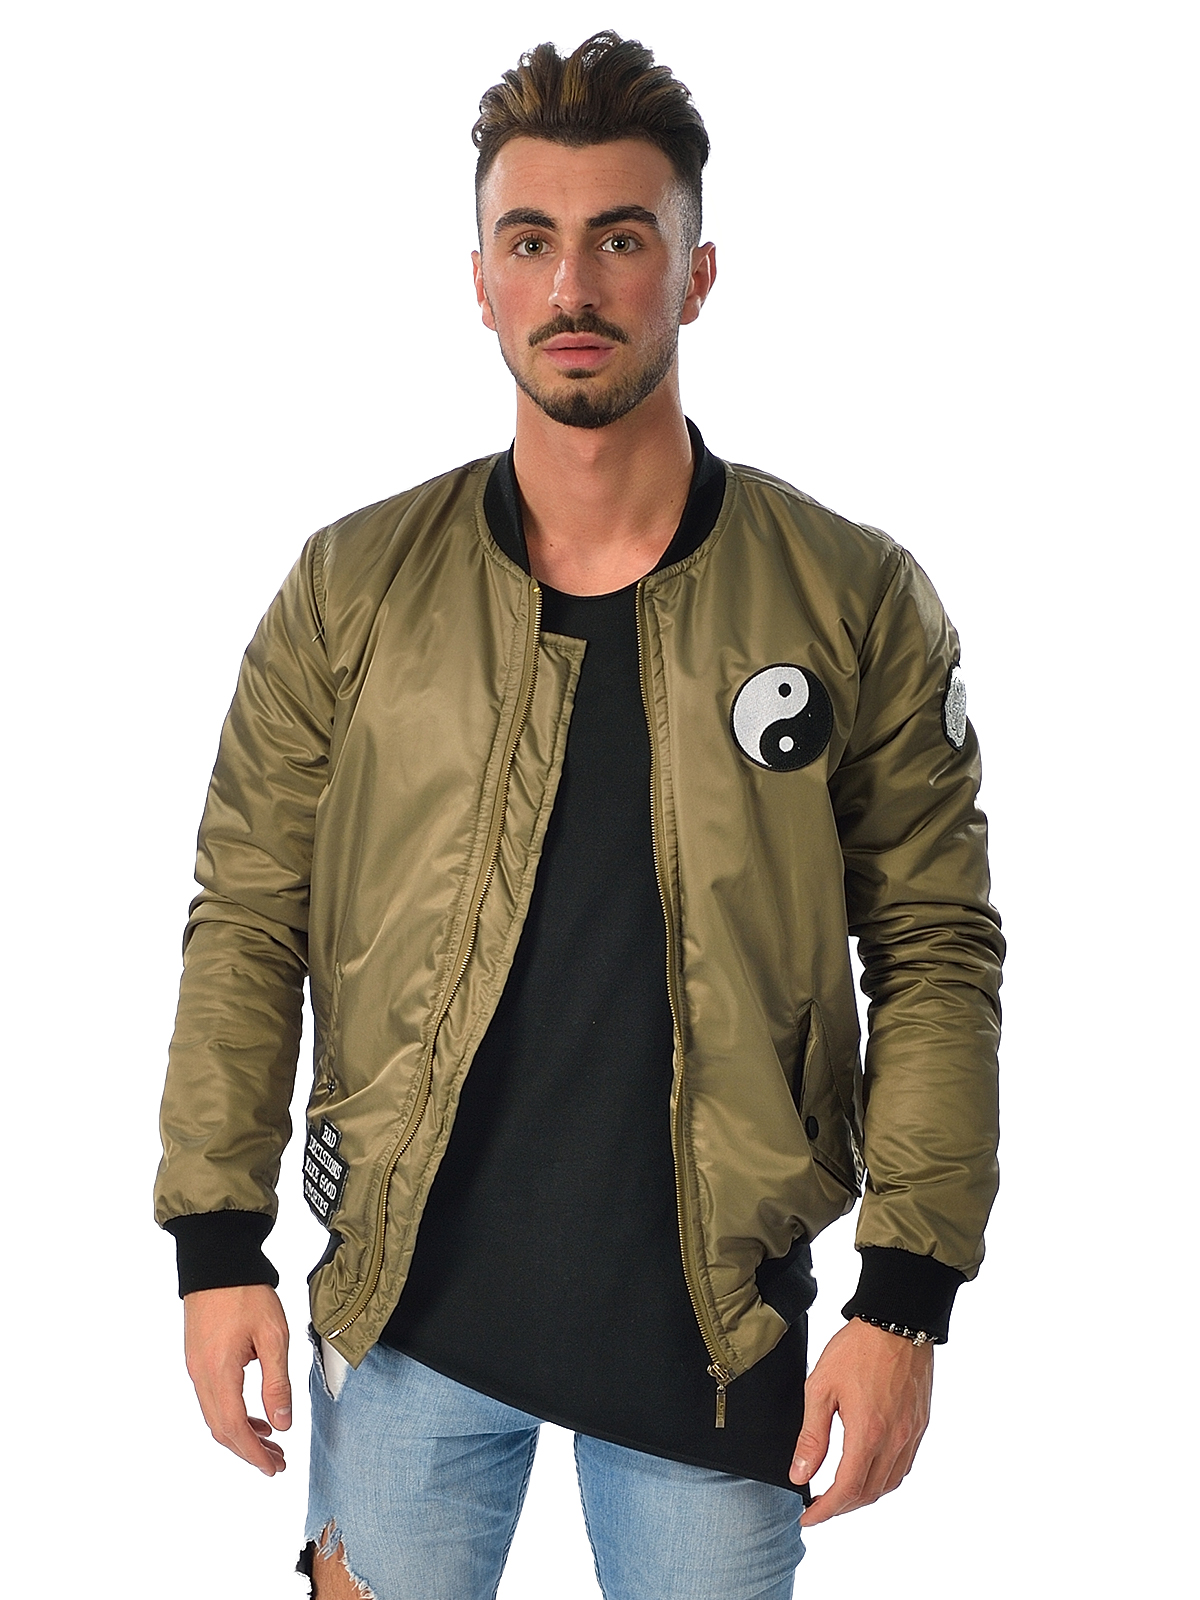 Yin Yang Bomber Jacket Men.